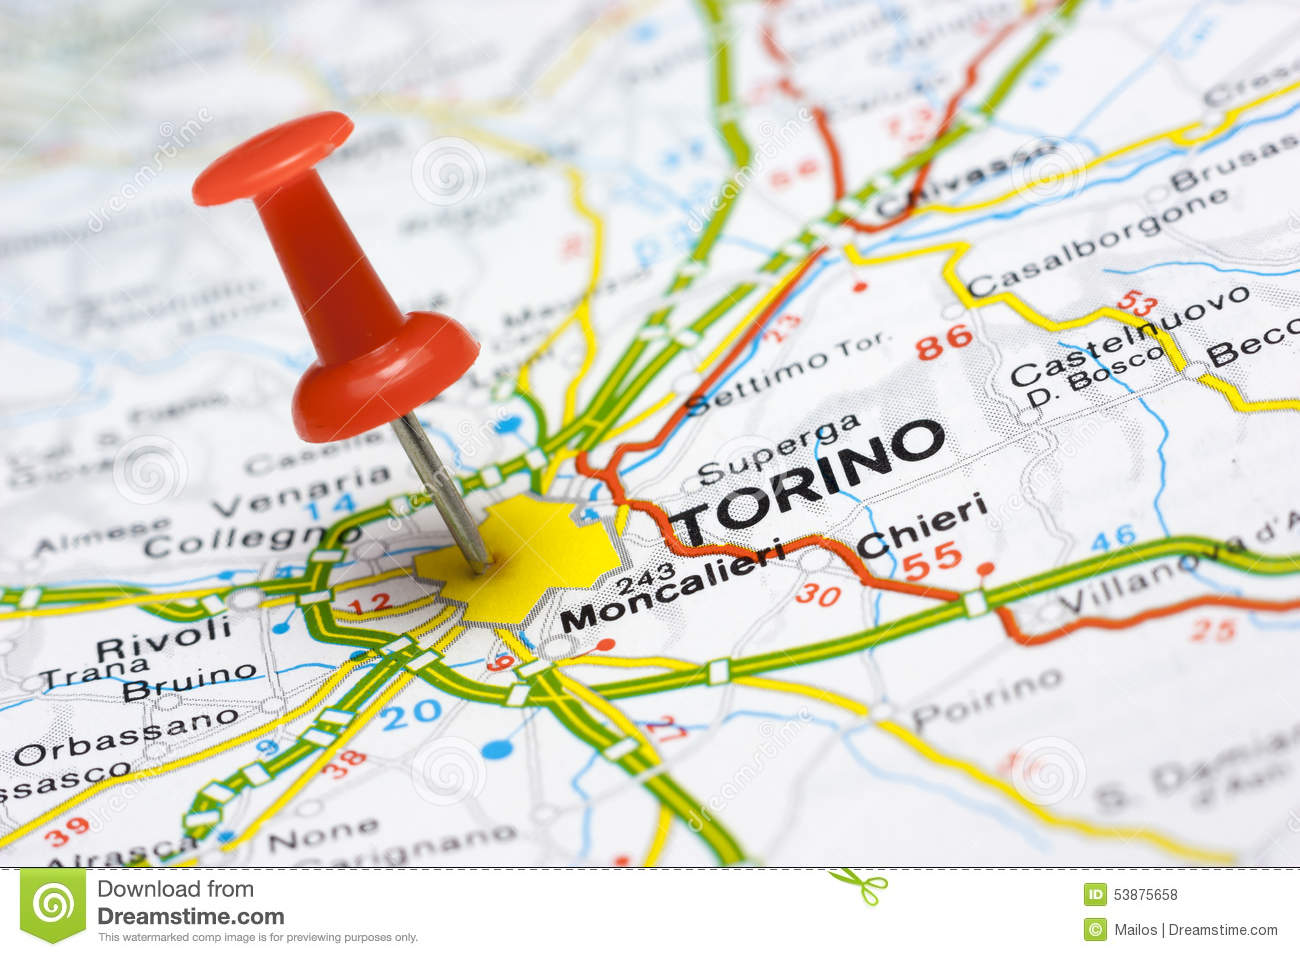 Map Of Italy Torino.Torino On A Map Stock Photo Image Of City Europe Looking 53875658